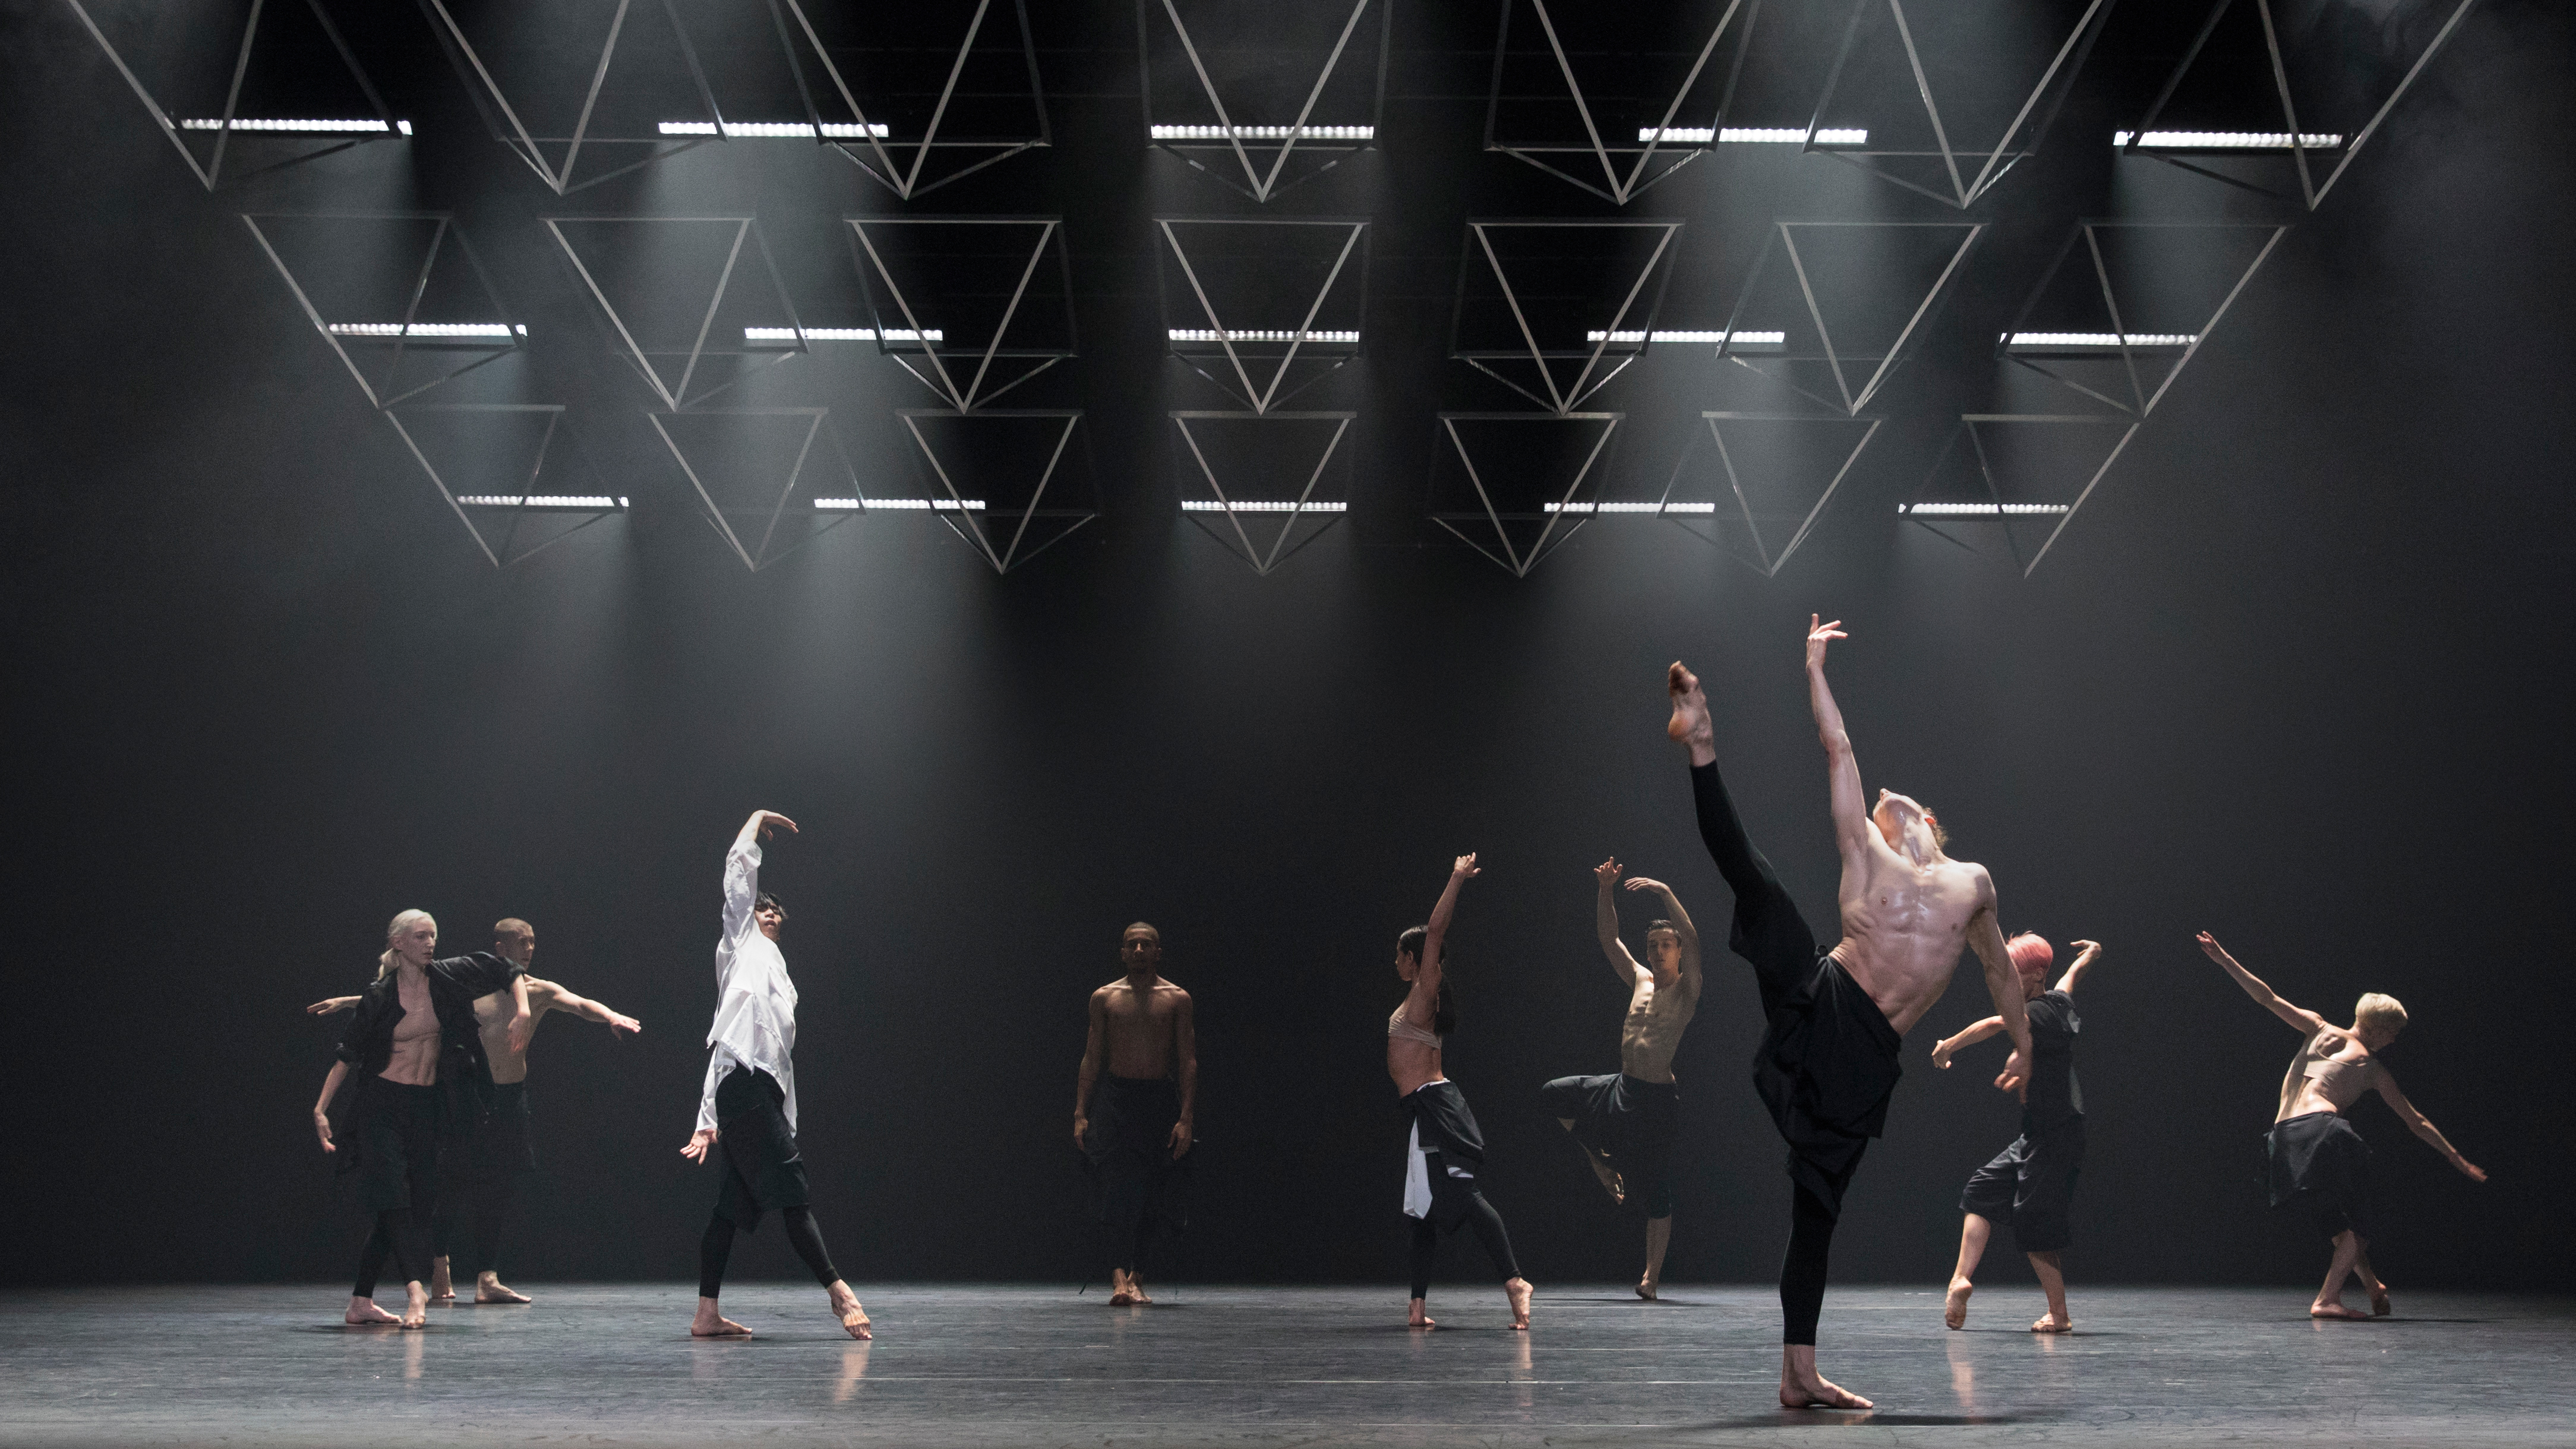 The Diverse World of Contemporary Dance at Tanz im August Festival